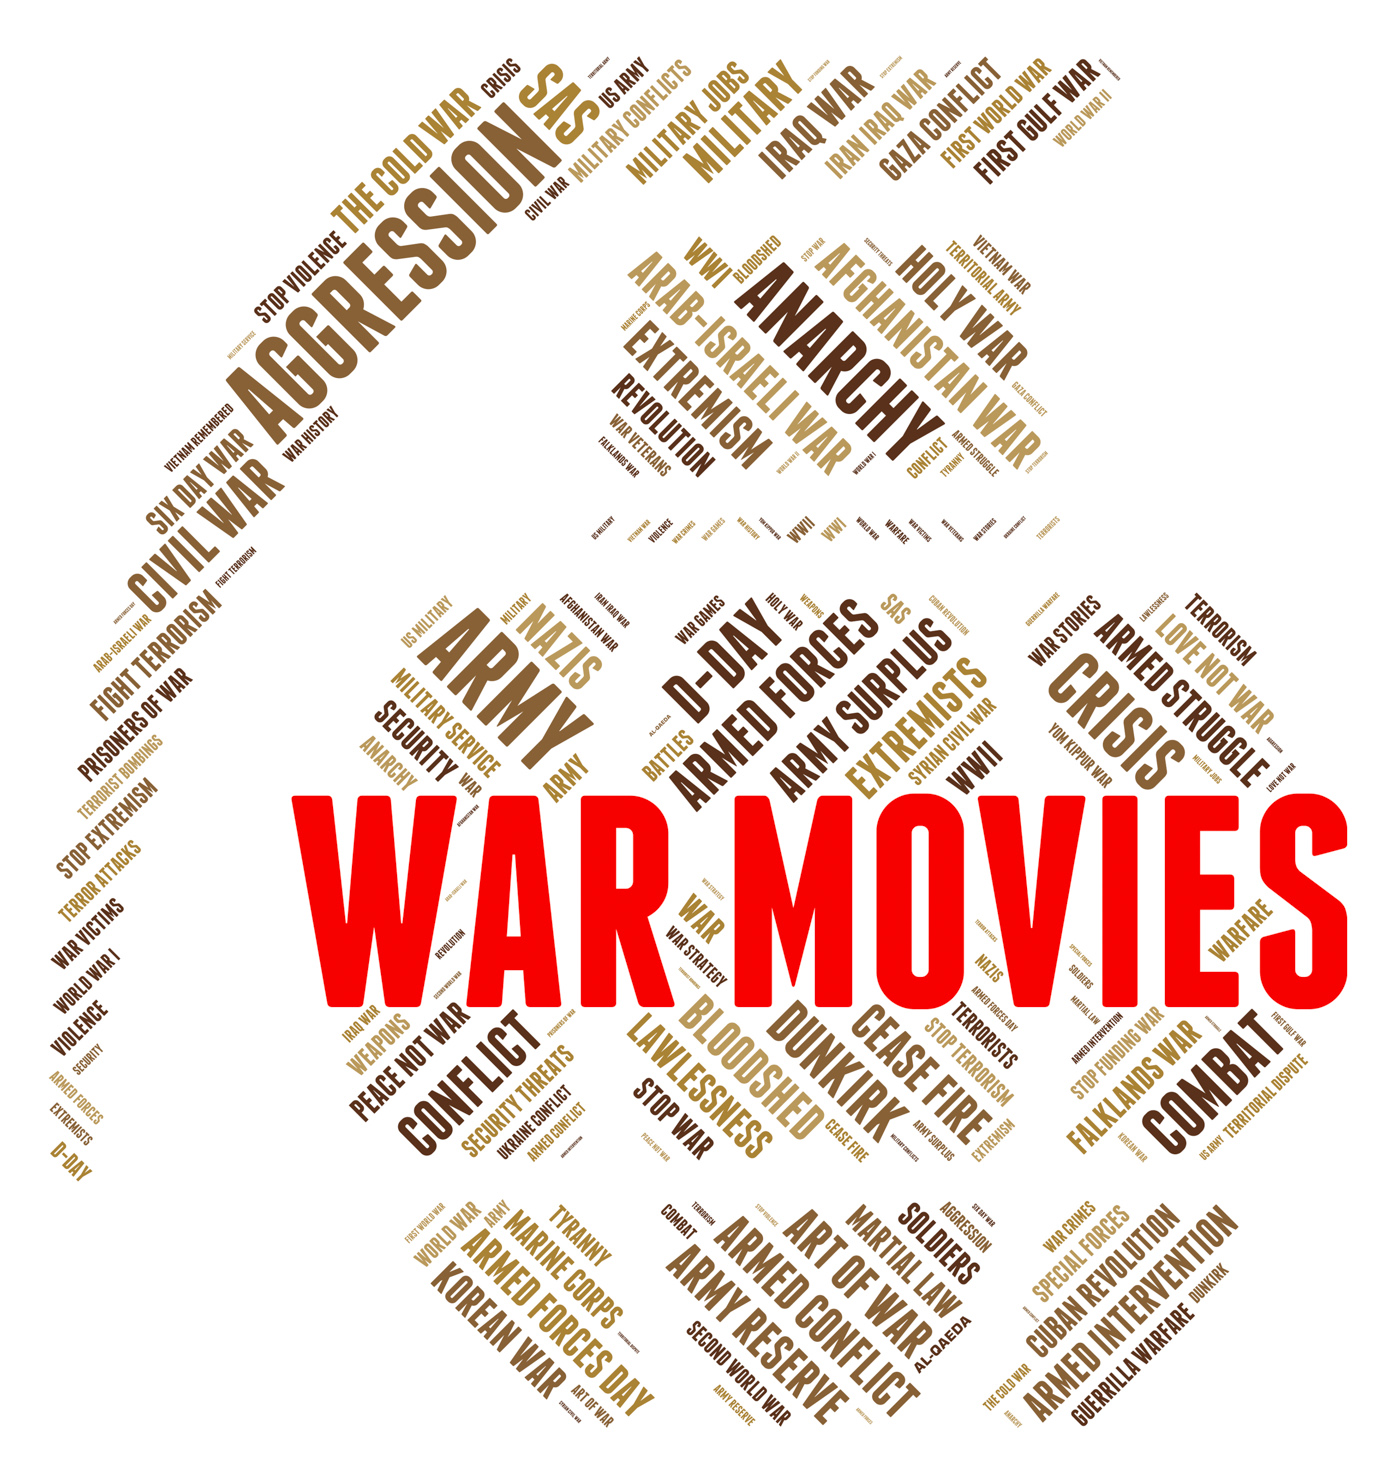 War movies shows military action and cinema photo